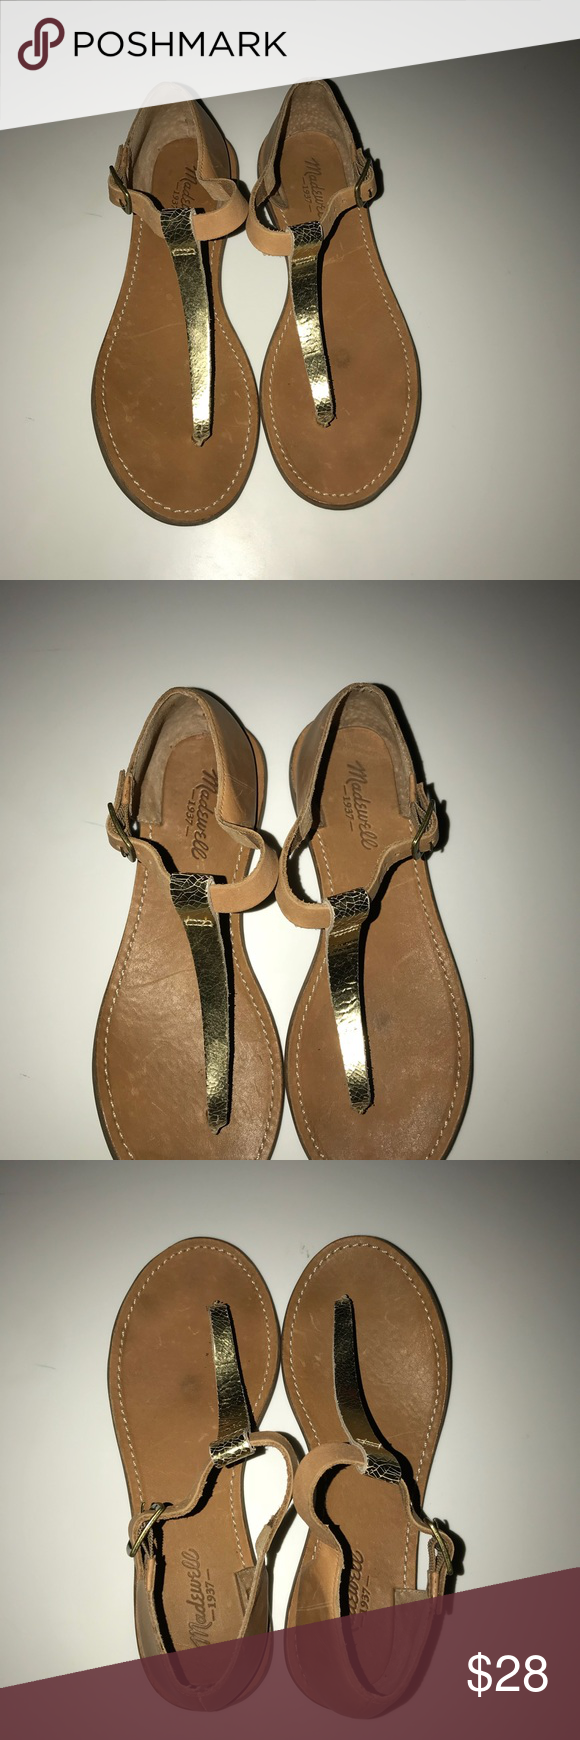 ef03eff6ac4fe1 Women s Madewell gold thong sandals size 7 Women s tan and gold madewell  1938 sandals in great condition. Really cute perfect for the beach and a  casual ...